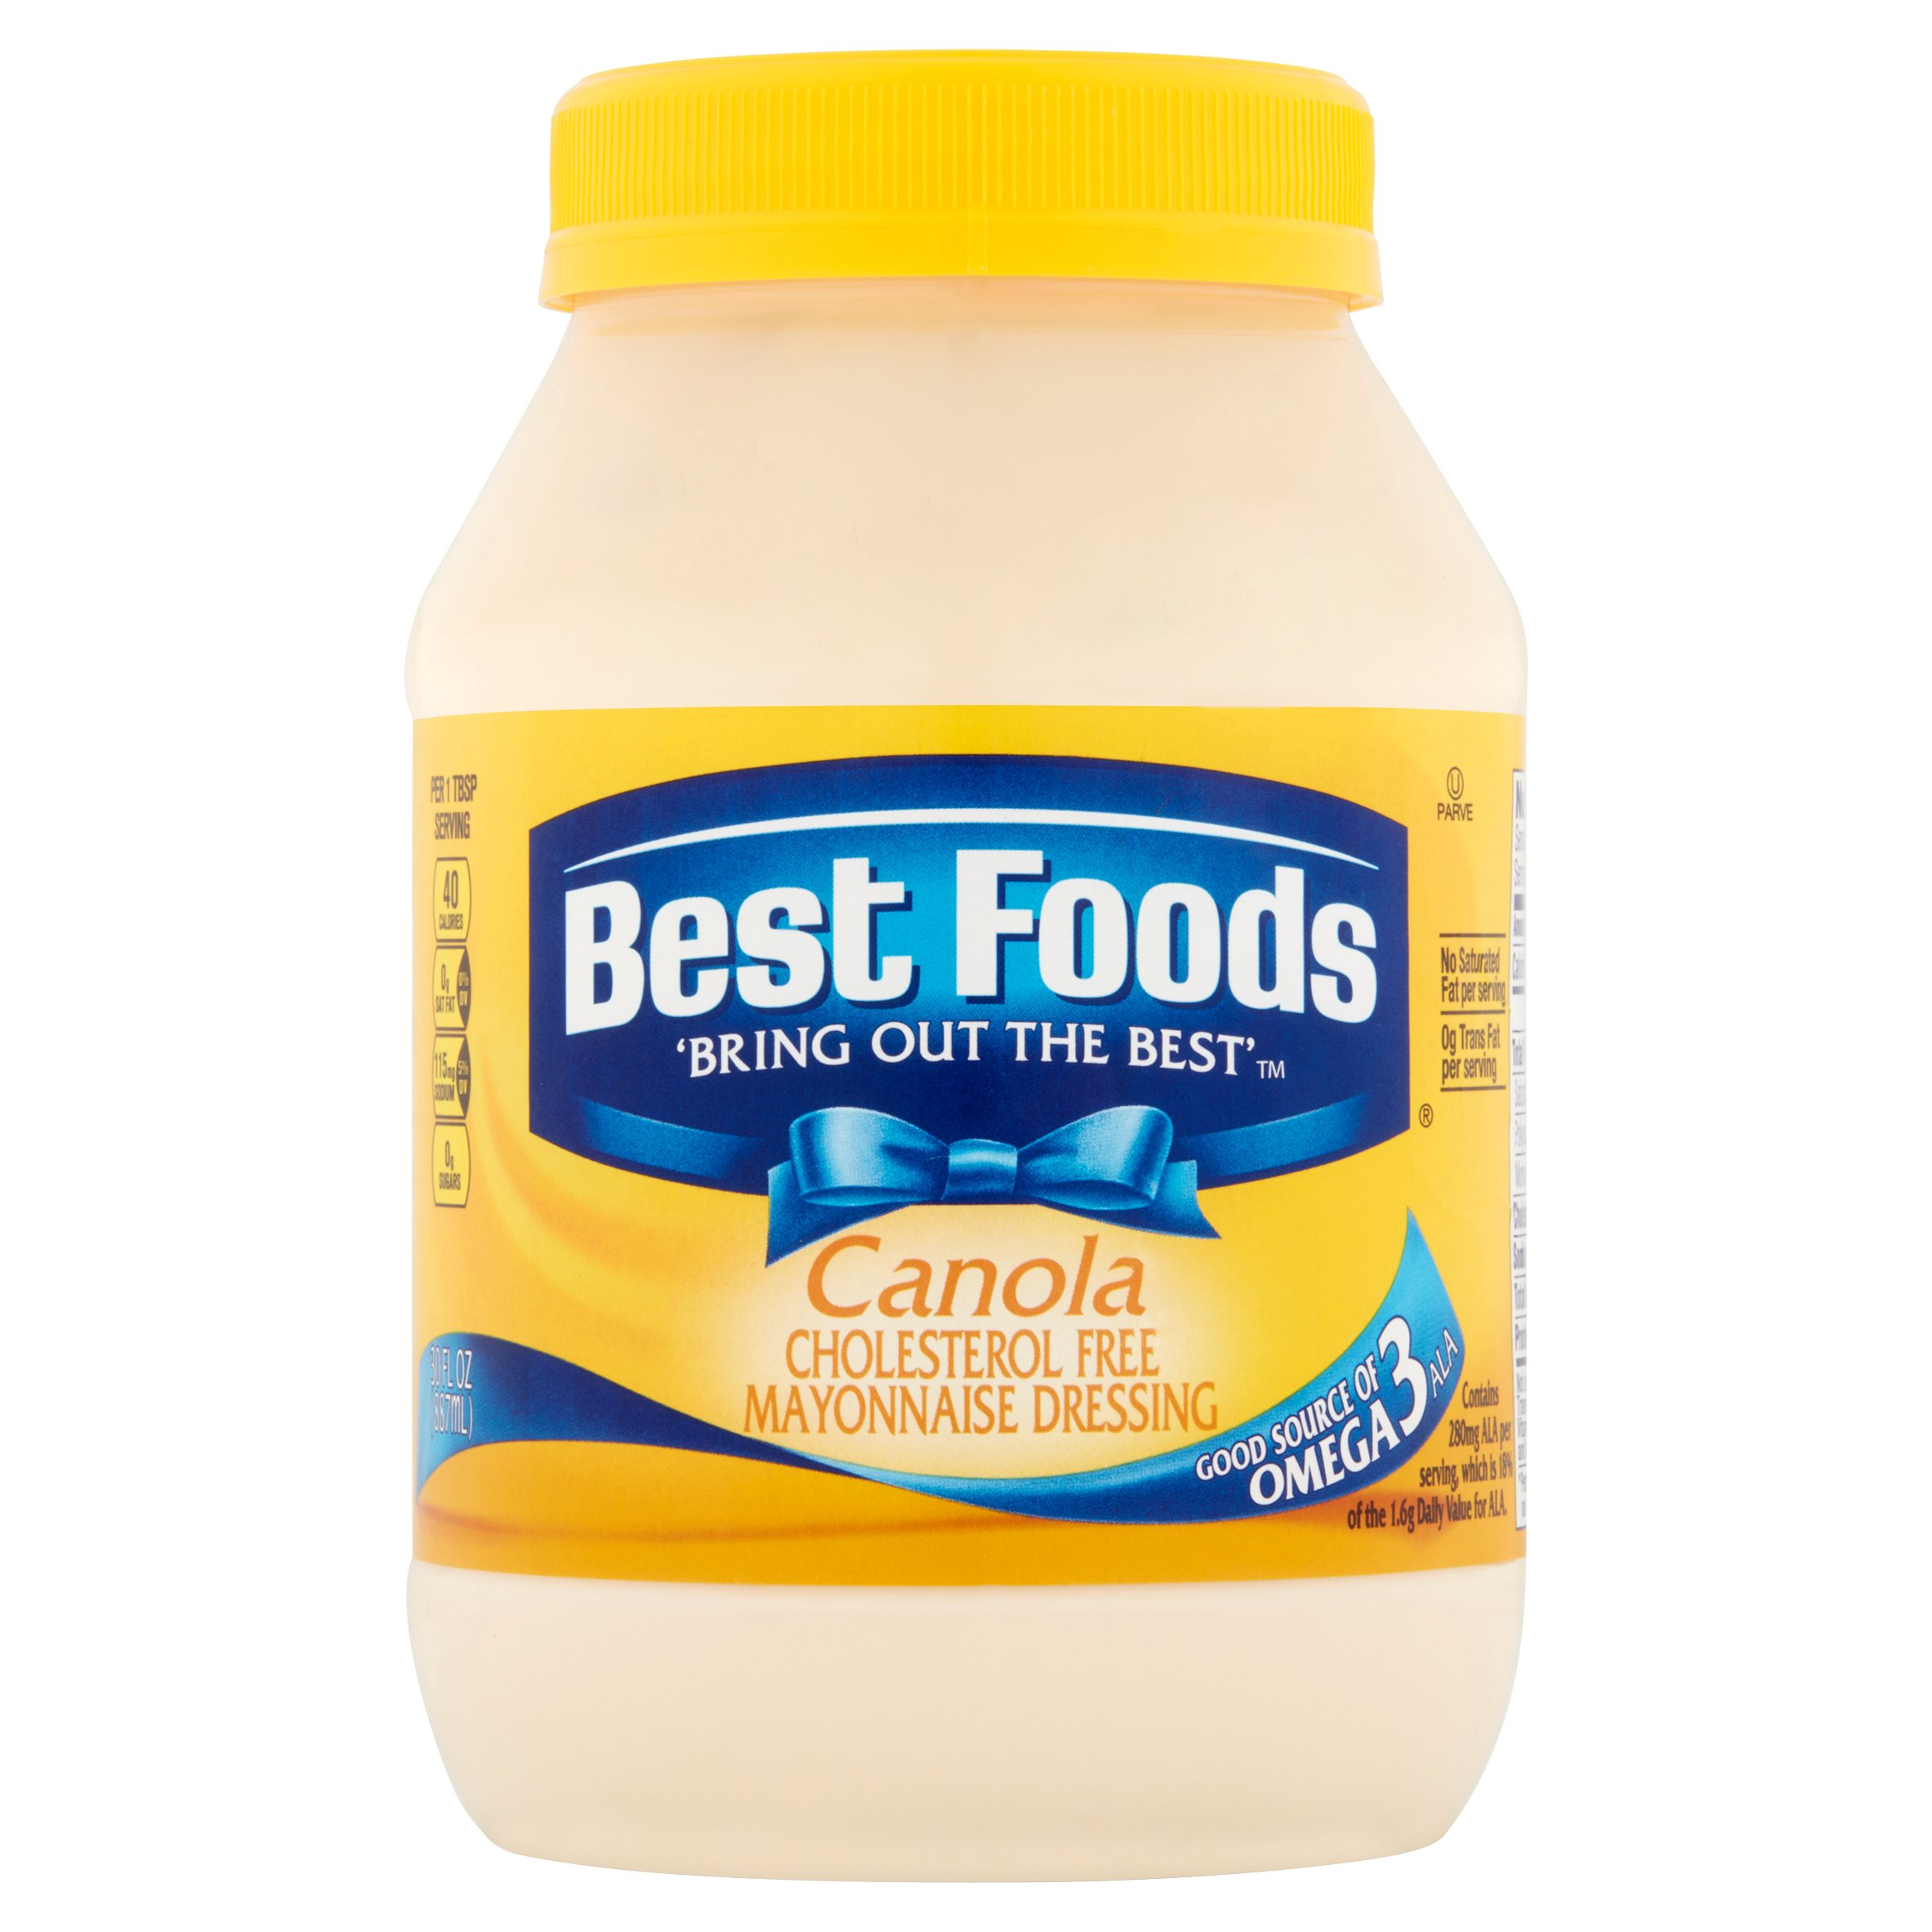 Best Foods Canola Cholesterol Free Mayonnaise Dressing, 30 oz